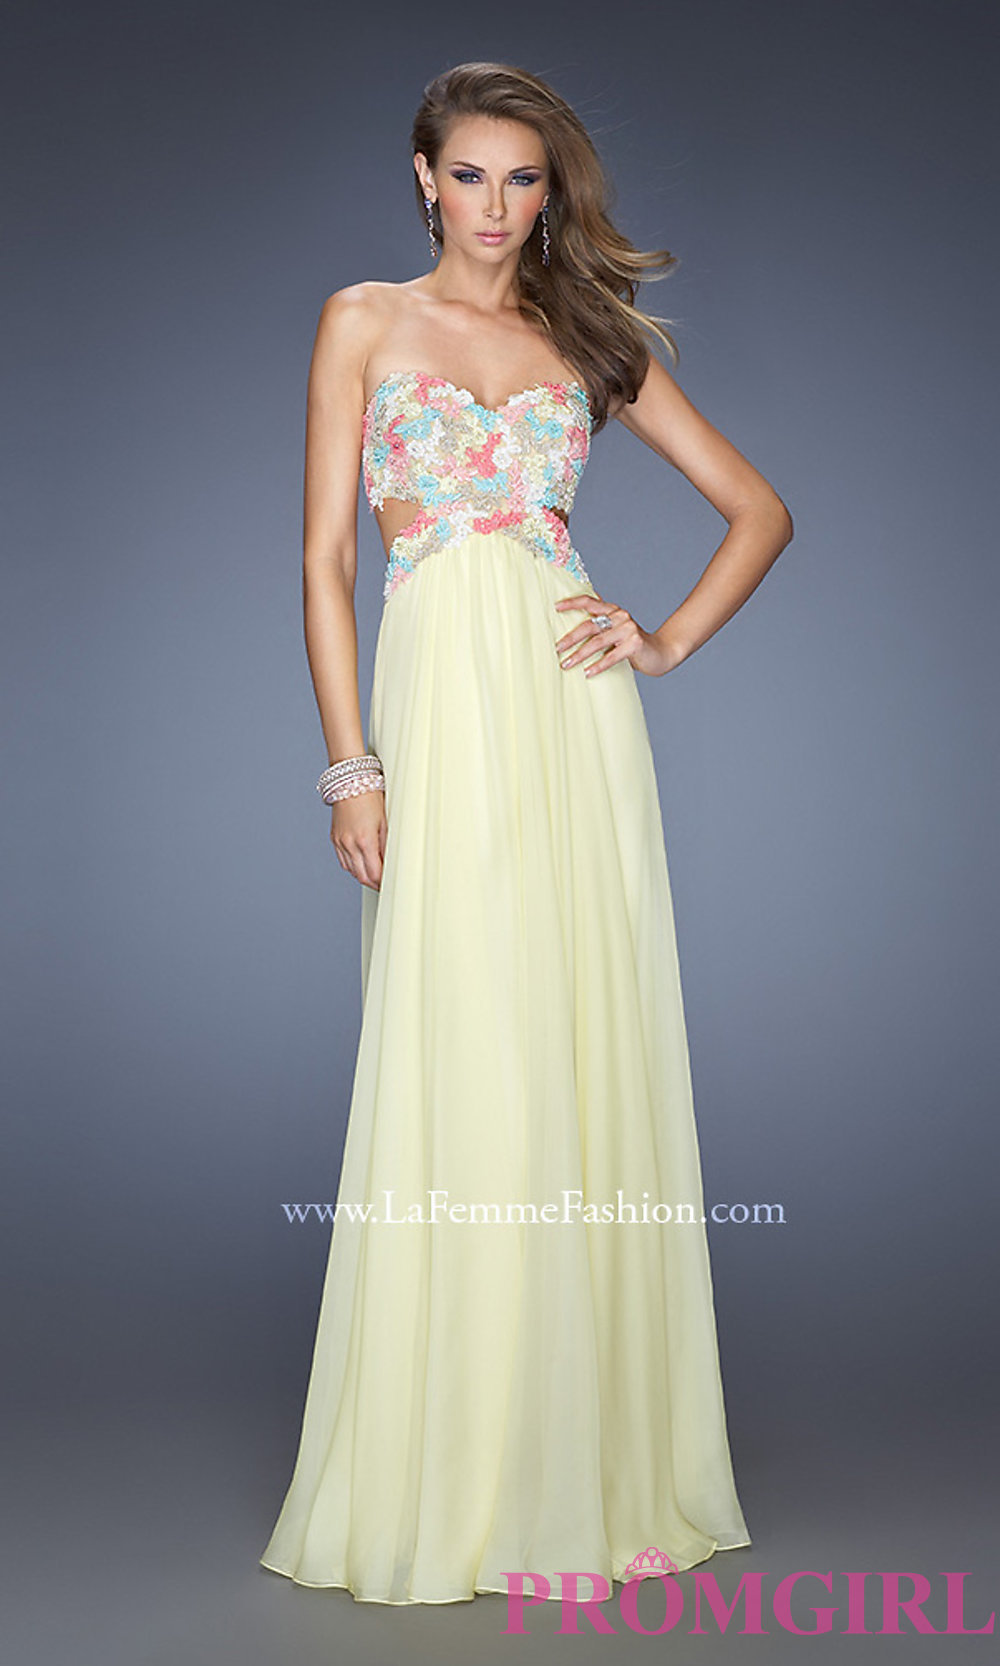 Long strapless sweetheart open back dress